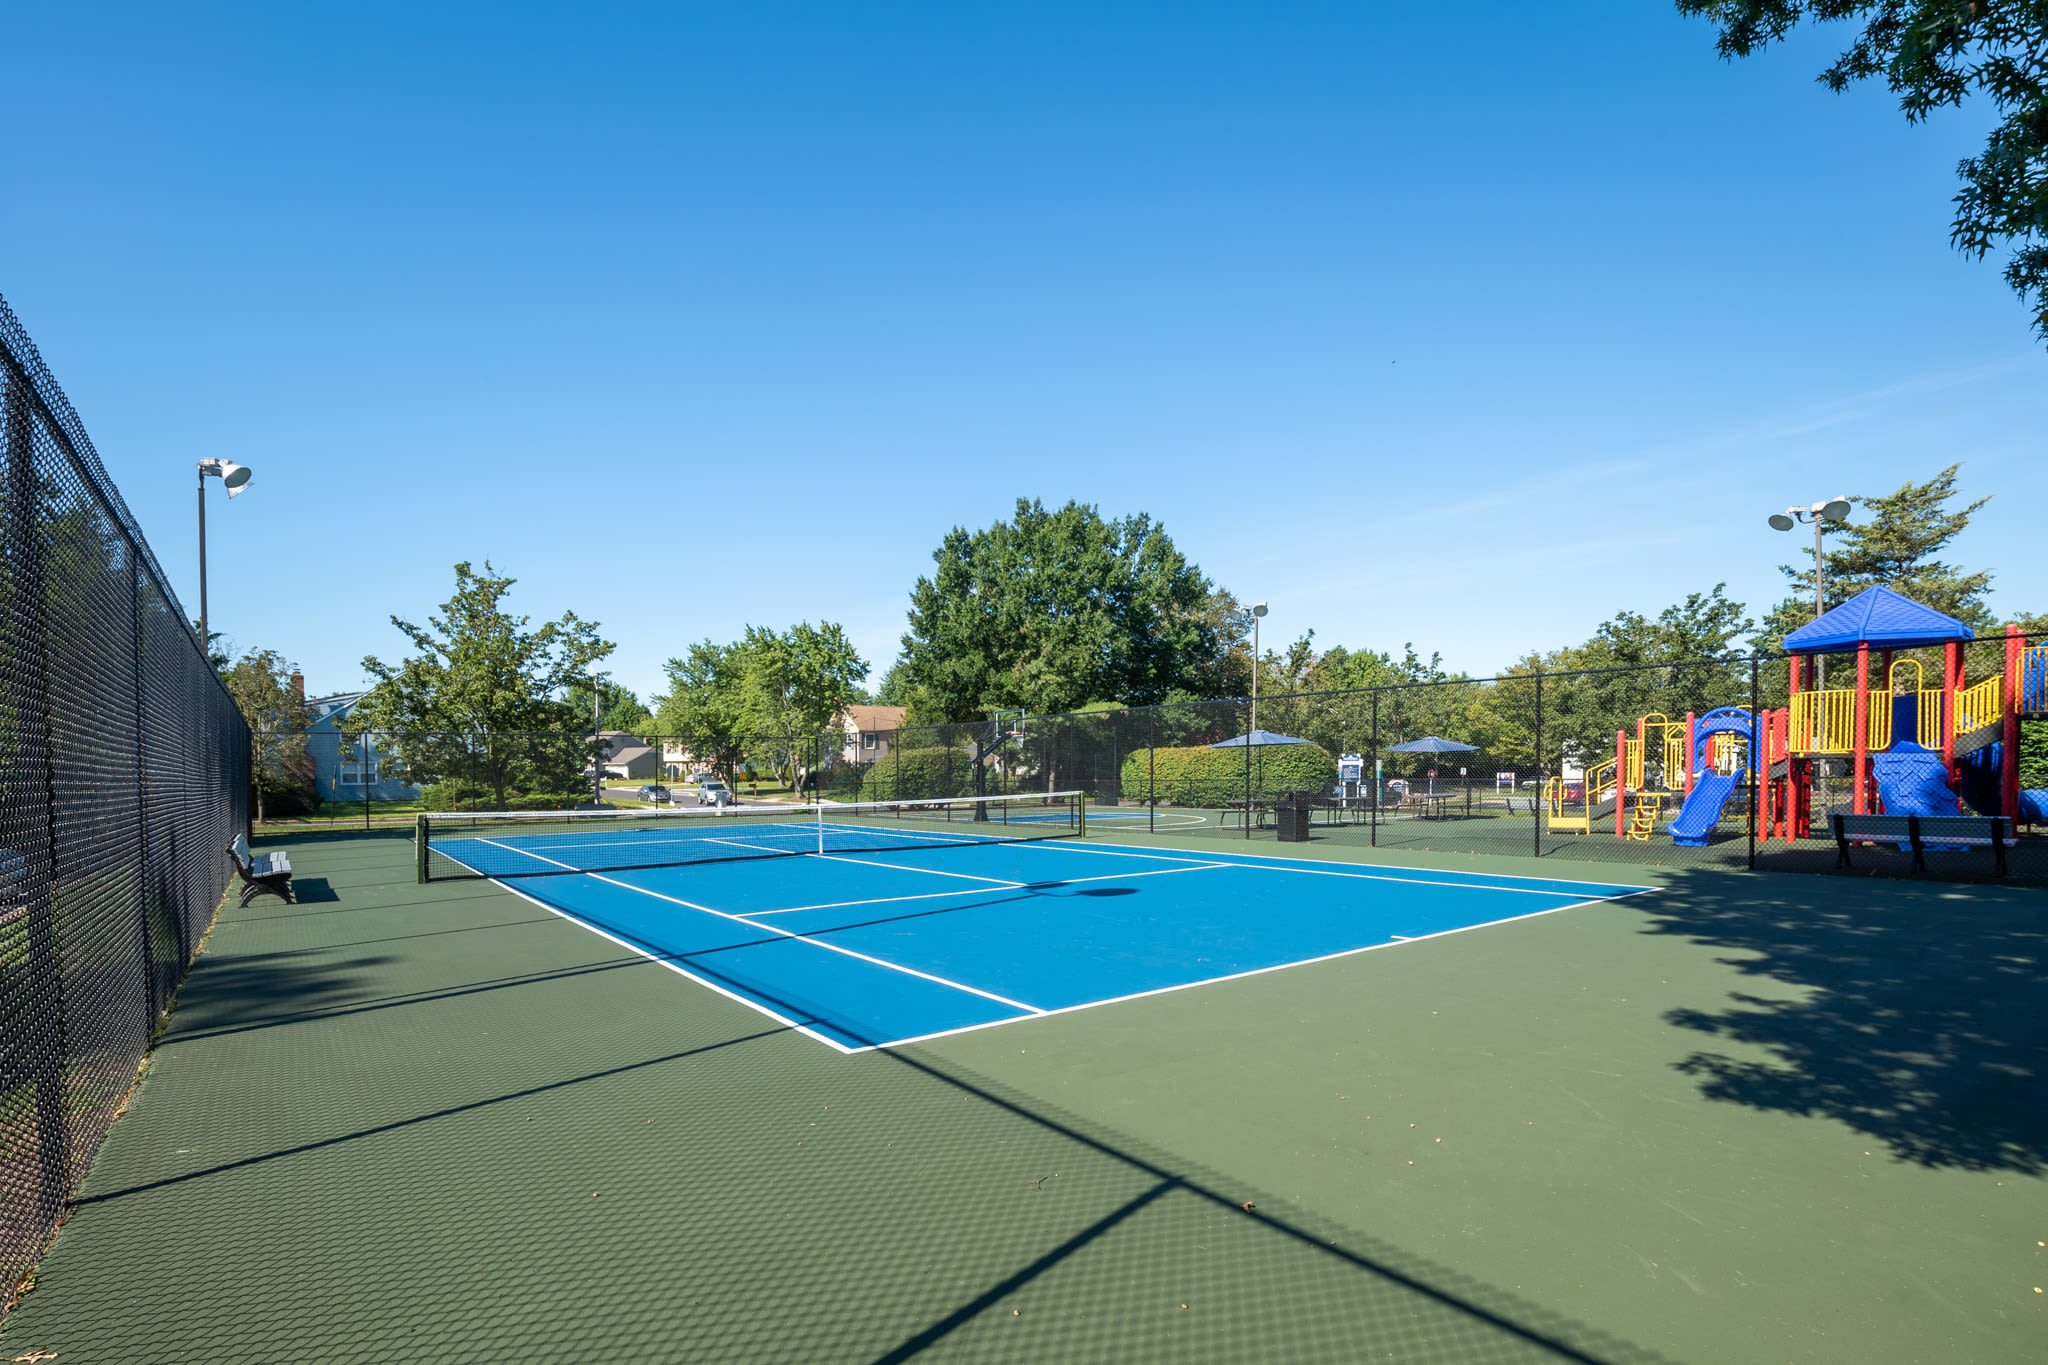 Tennis courts at The Village at Voorhees in Voorhees, New Jersey